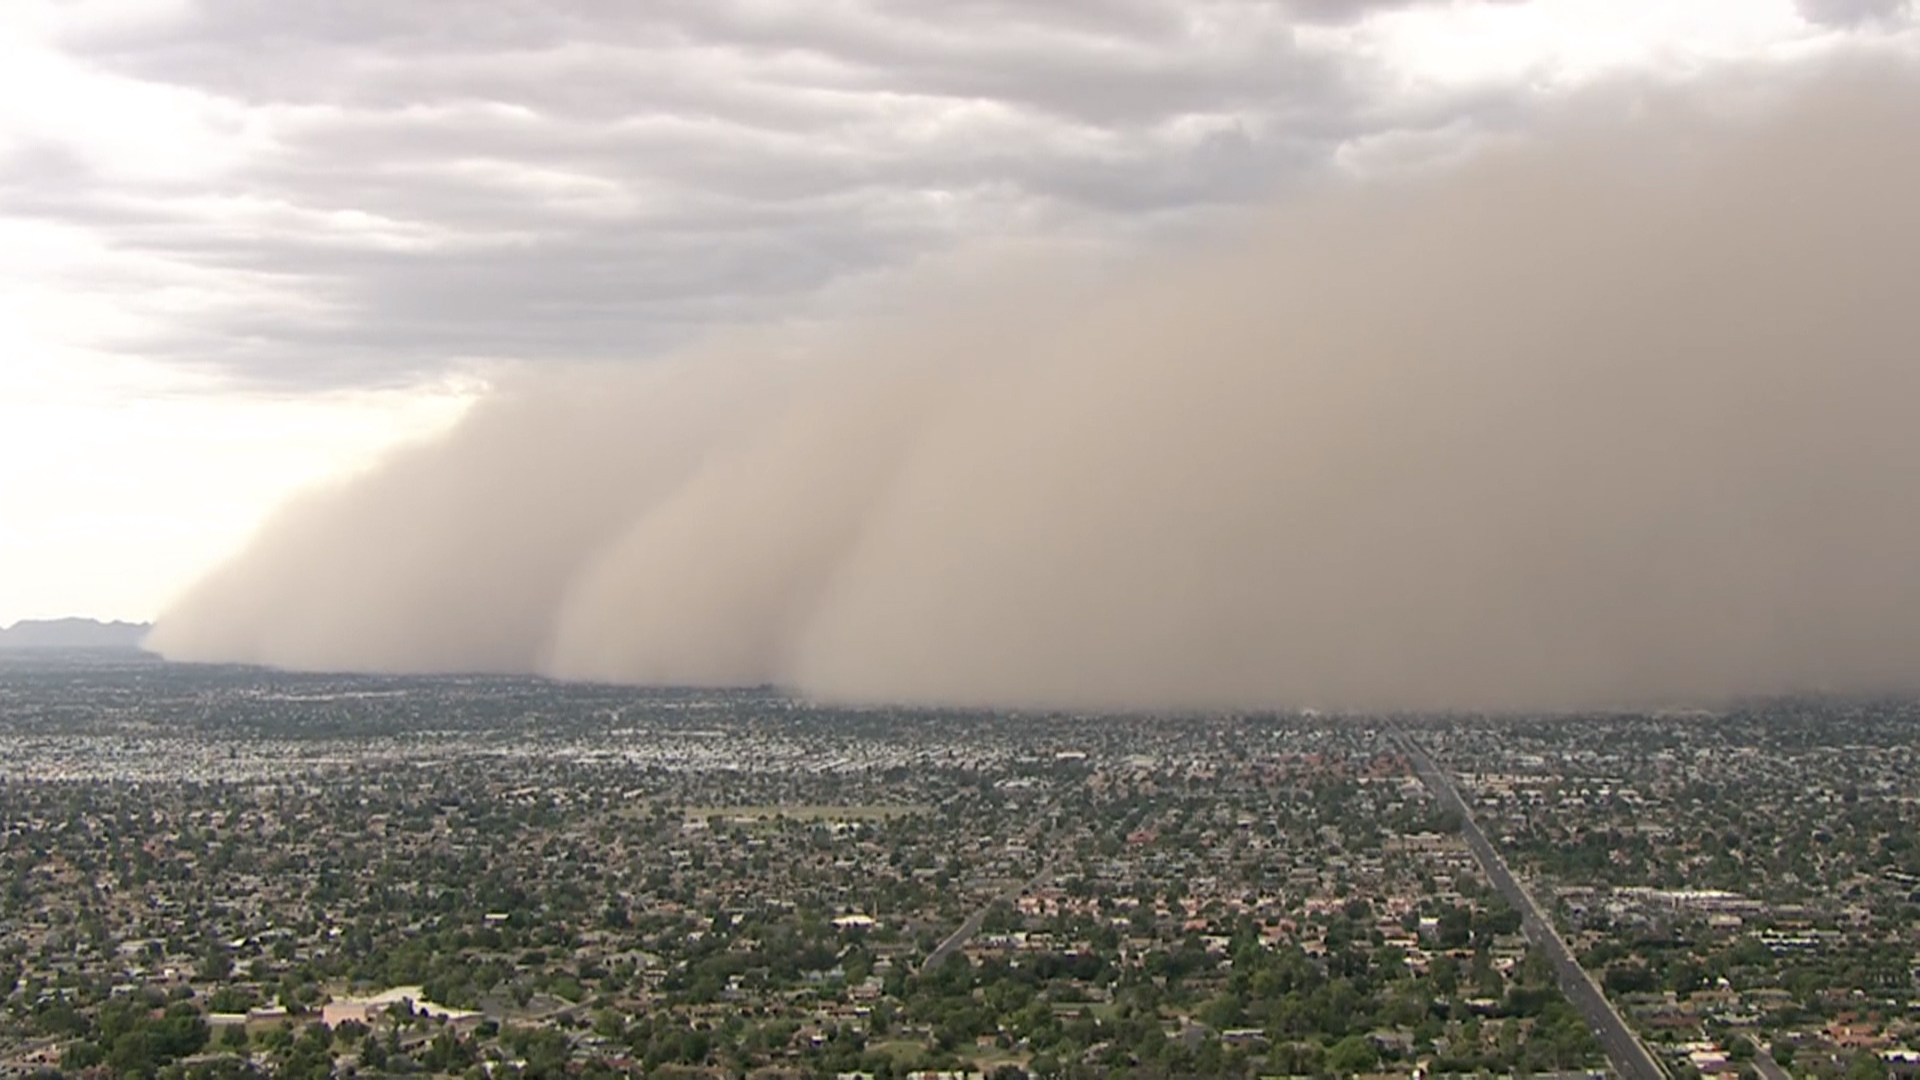 Dust Storm Blows Through Phoenix   NBC News 1920x1080